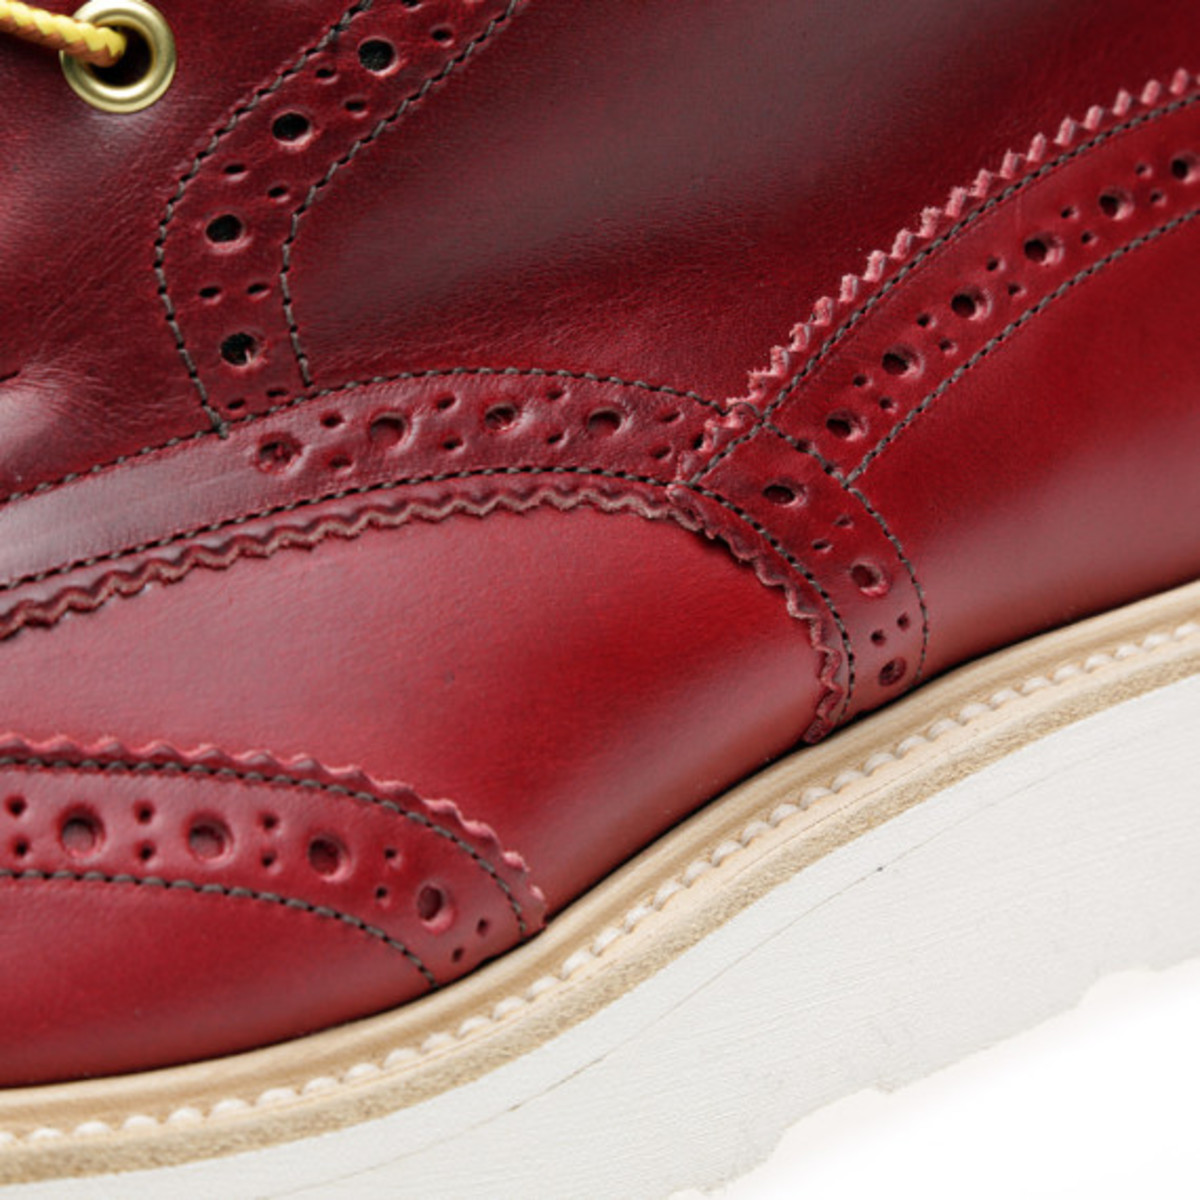 end-trickers-vibram-sole-stow-boot-14